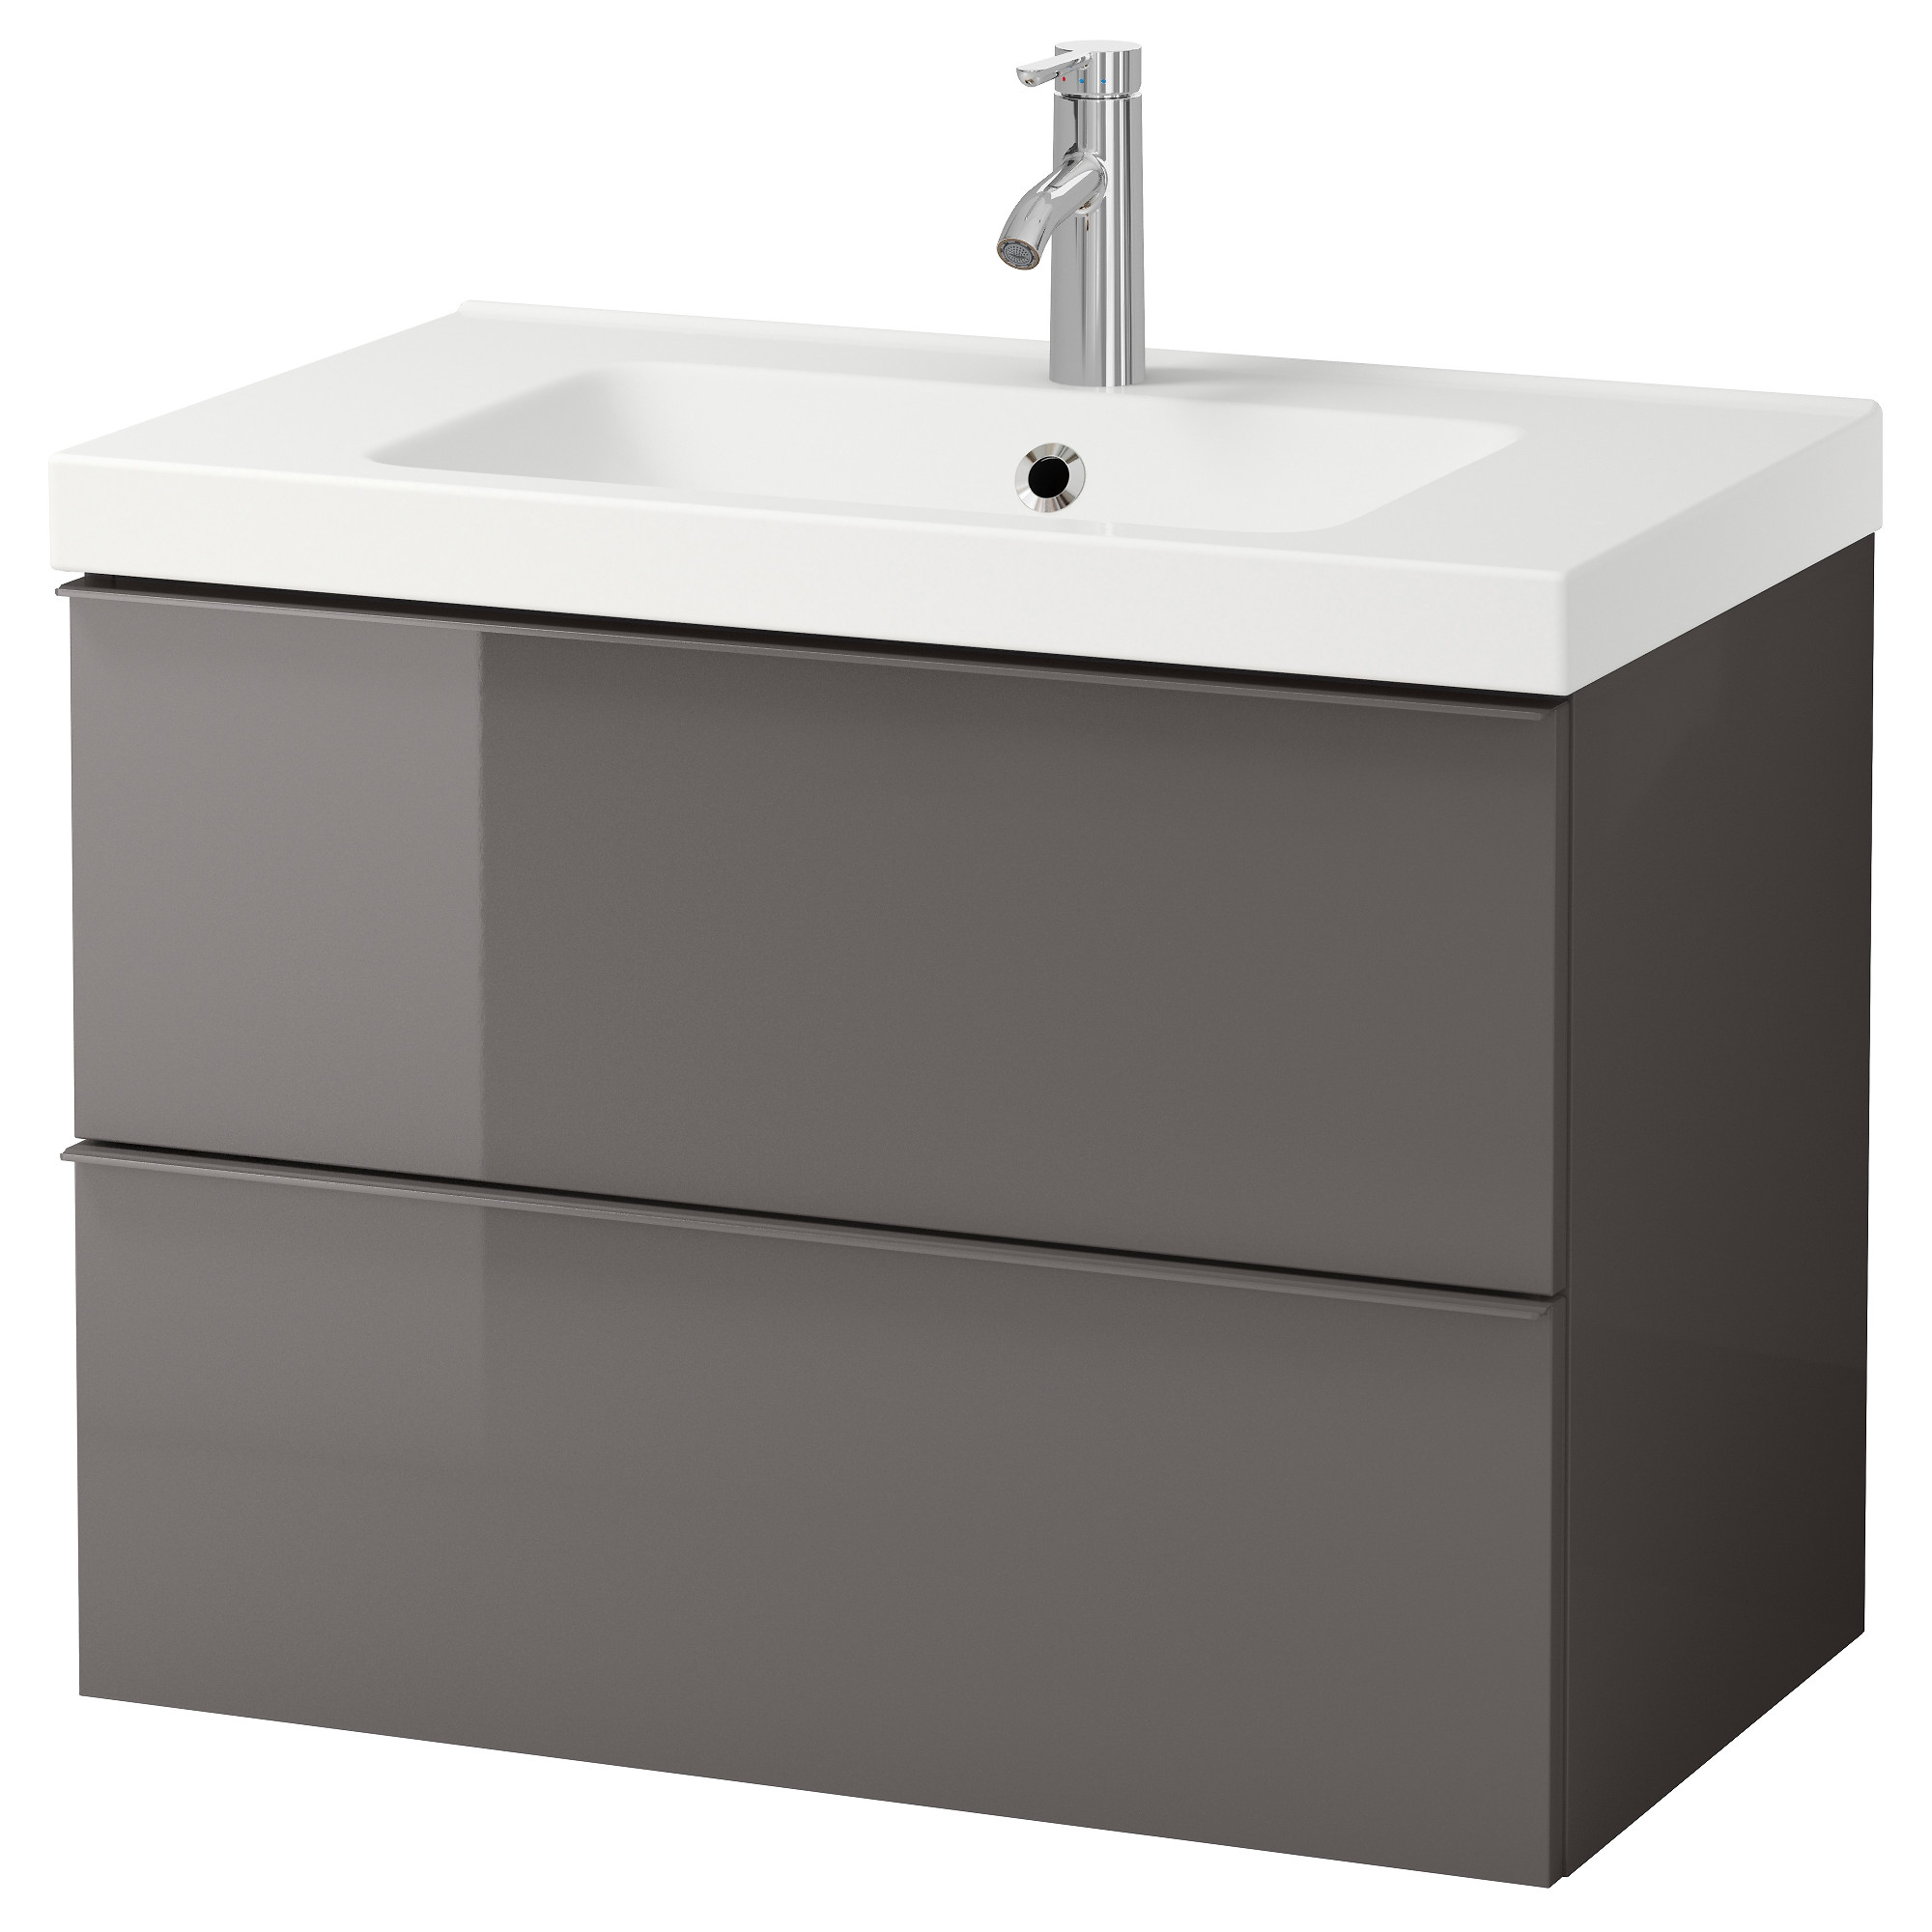 Morgon Odensvik Sink Cabinet With 2 Drawers Black Brown